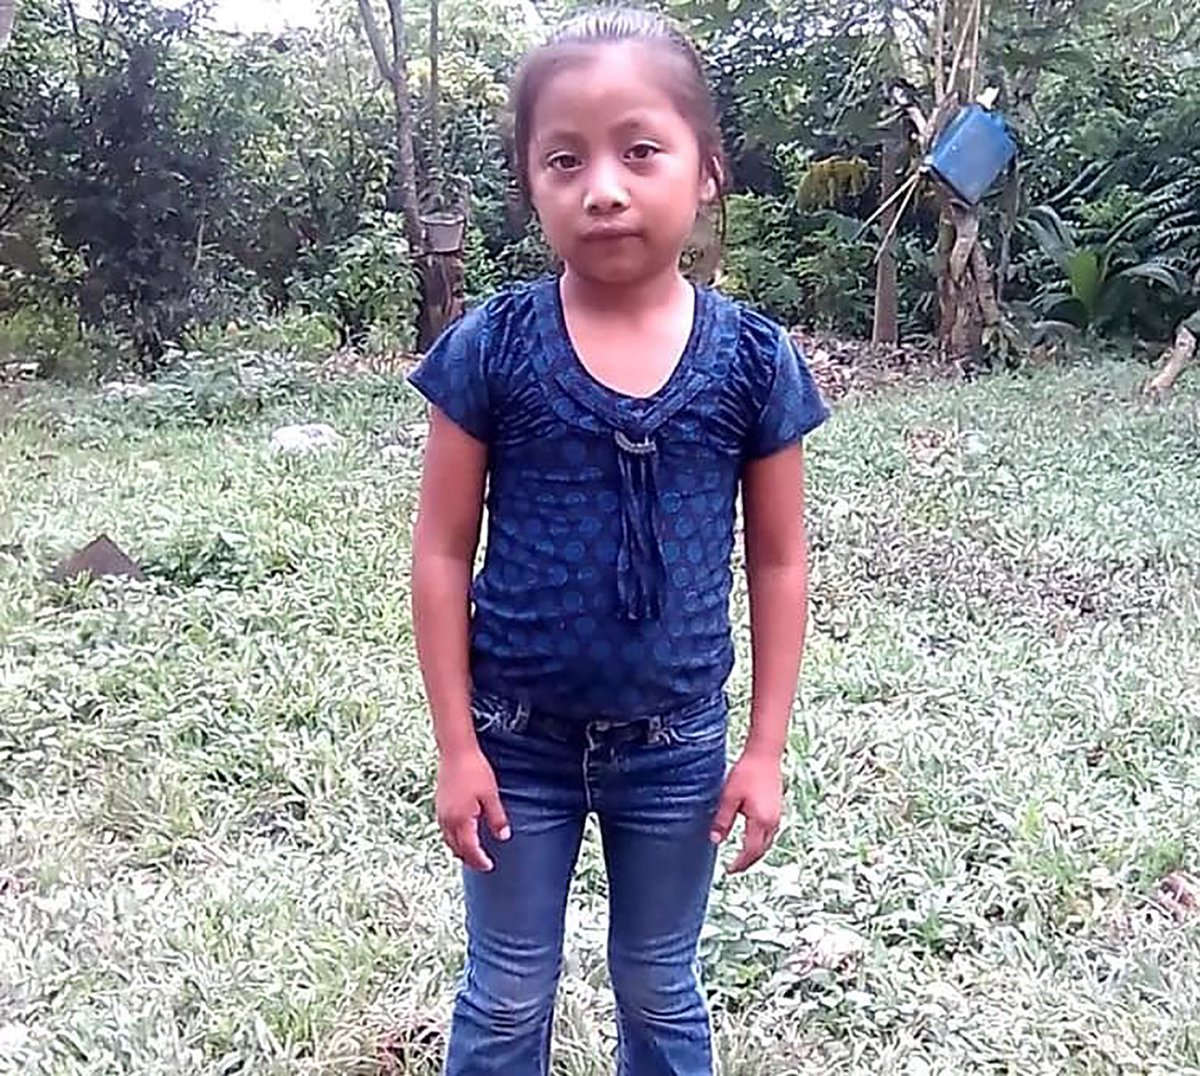 Jakelin Caal Maquin... is a name I won't forget ???? https://t.co/nFc9QrGEjM